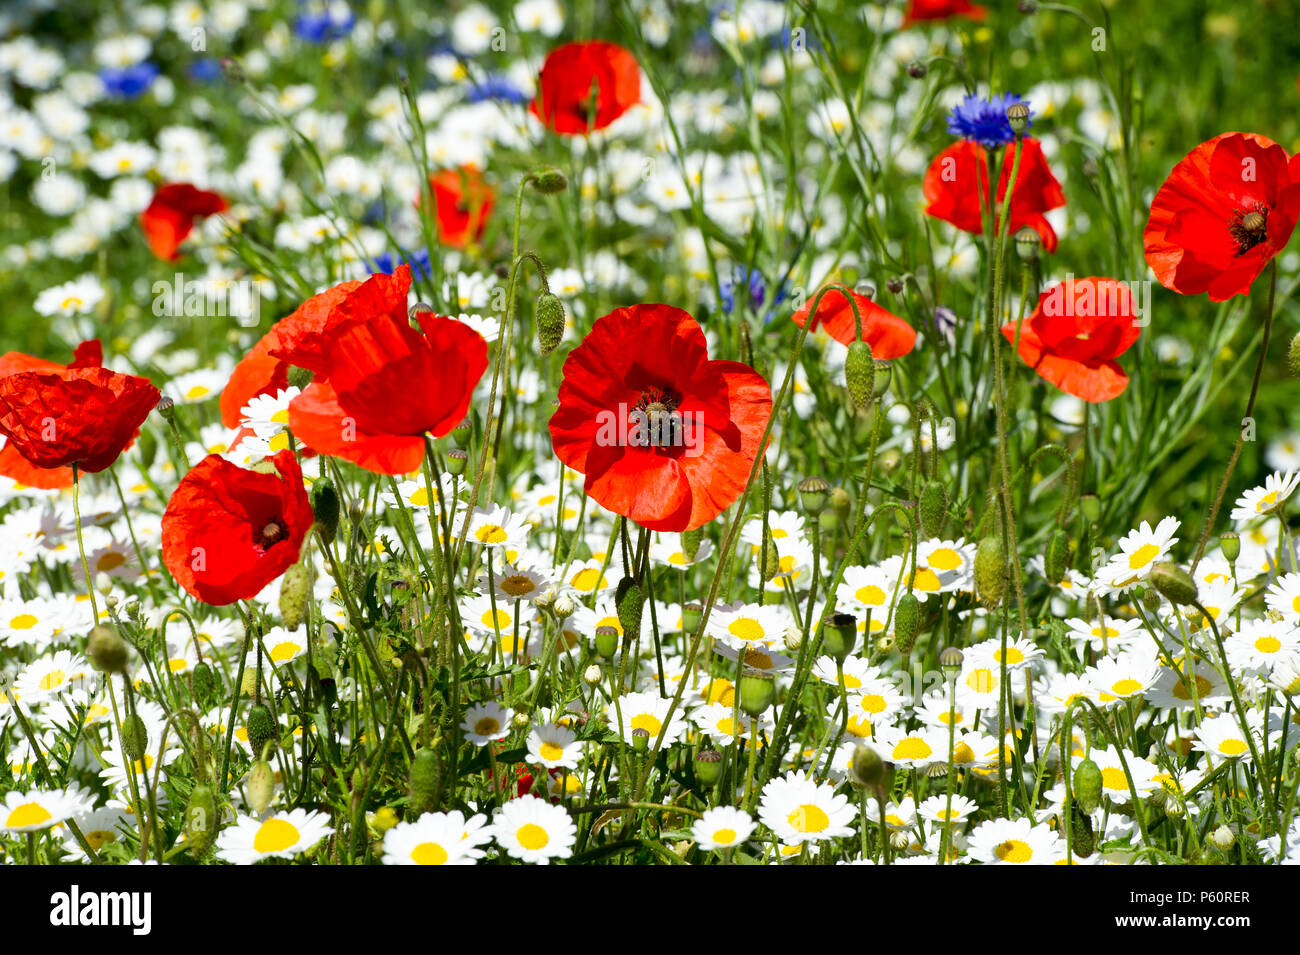 Common poppies / red poppy (Papaver rhoeas) and wild flowers  in Holyrood park, Edinburgh. - Stock Image